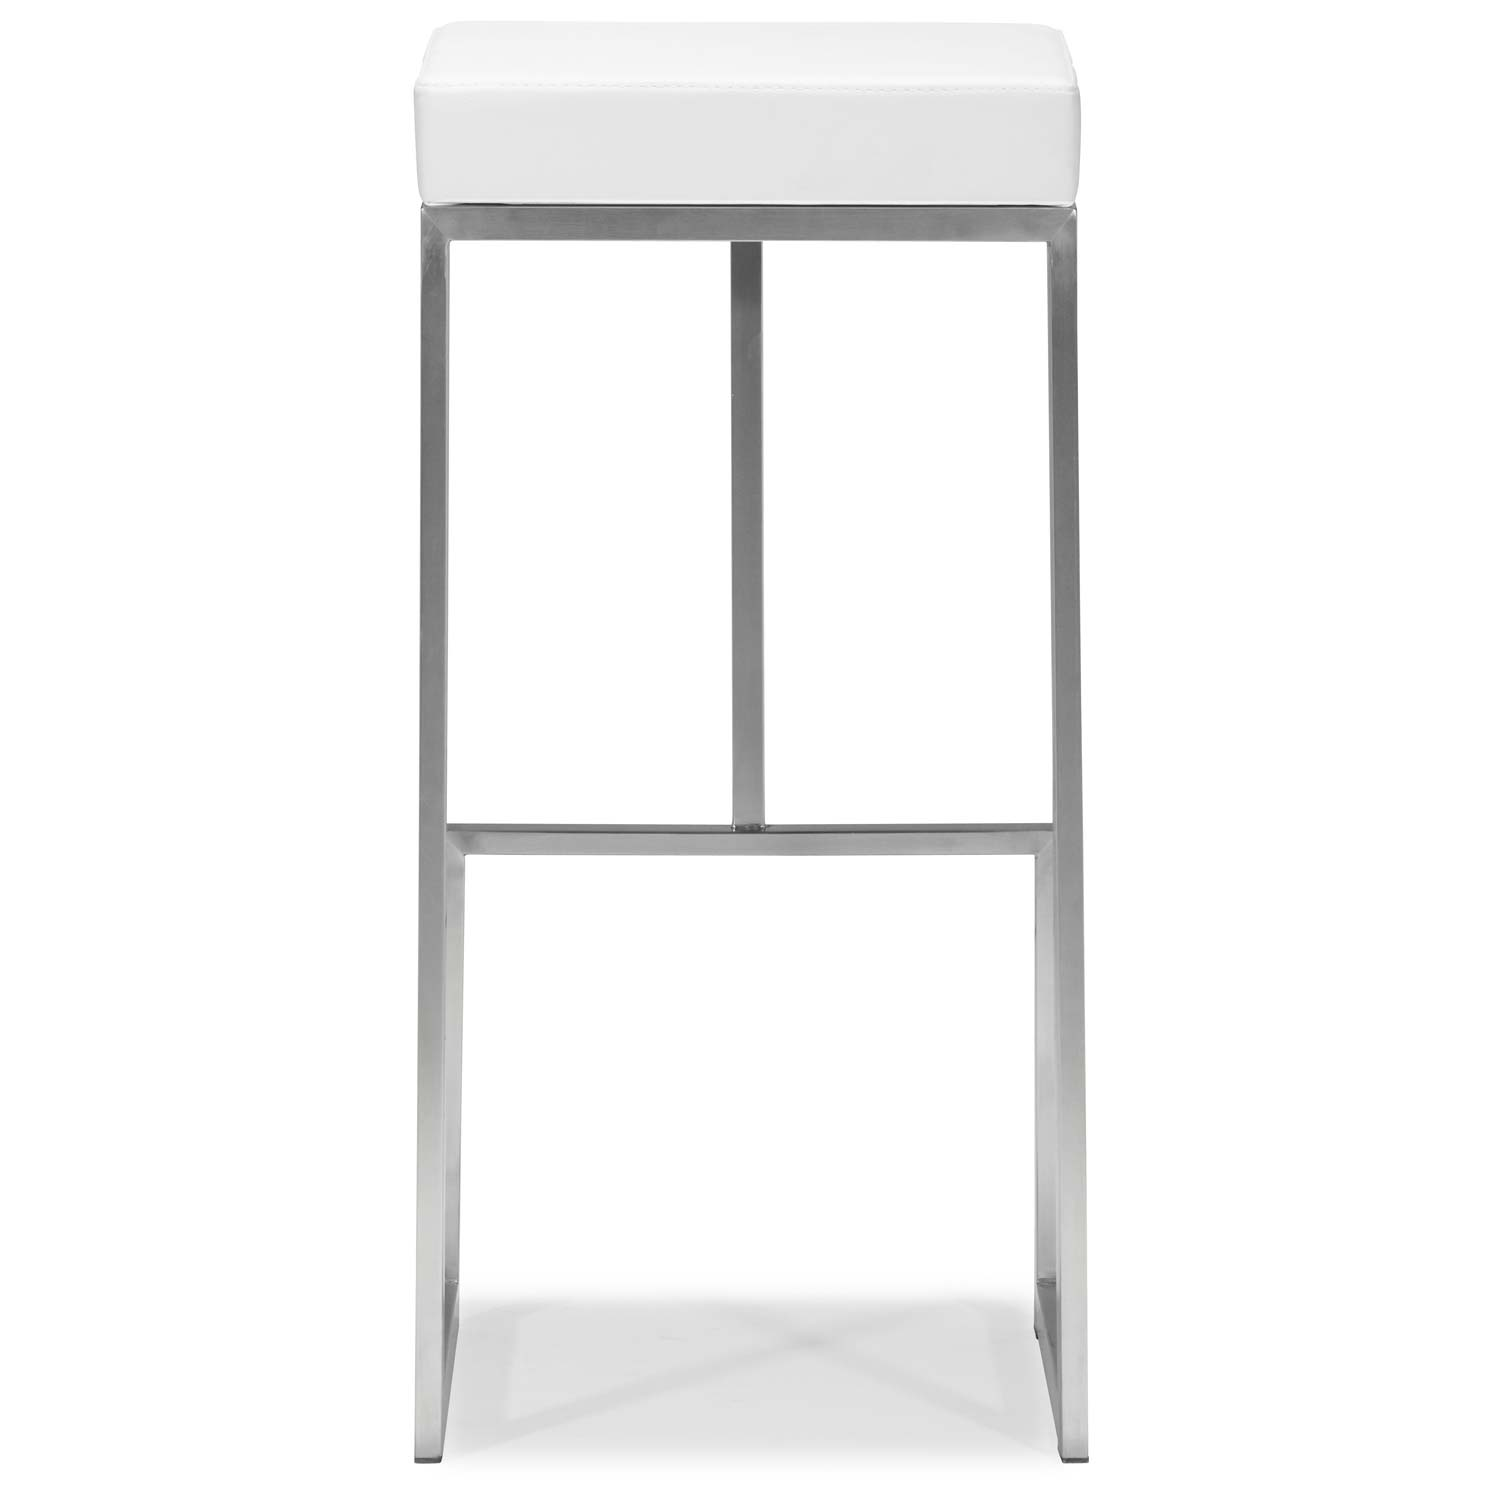 "Darwen 30"" Backless Bar Stool - Stainless Steel, White - ZM-300046"